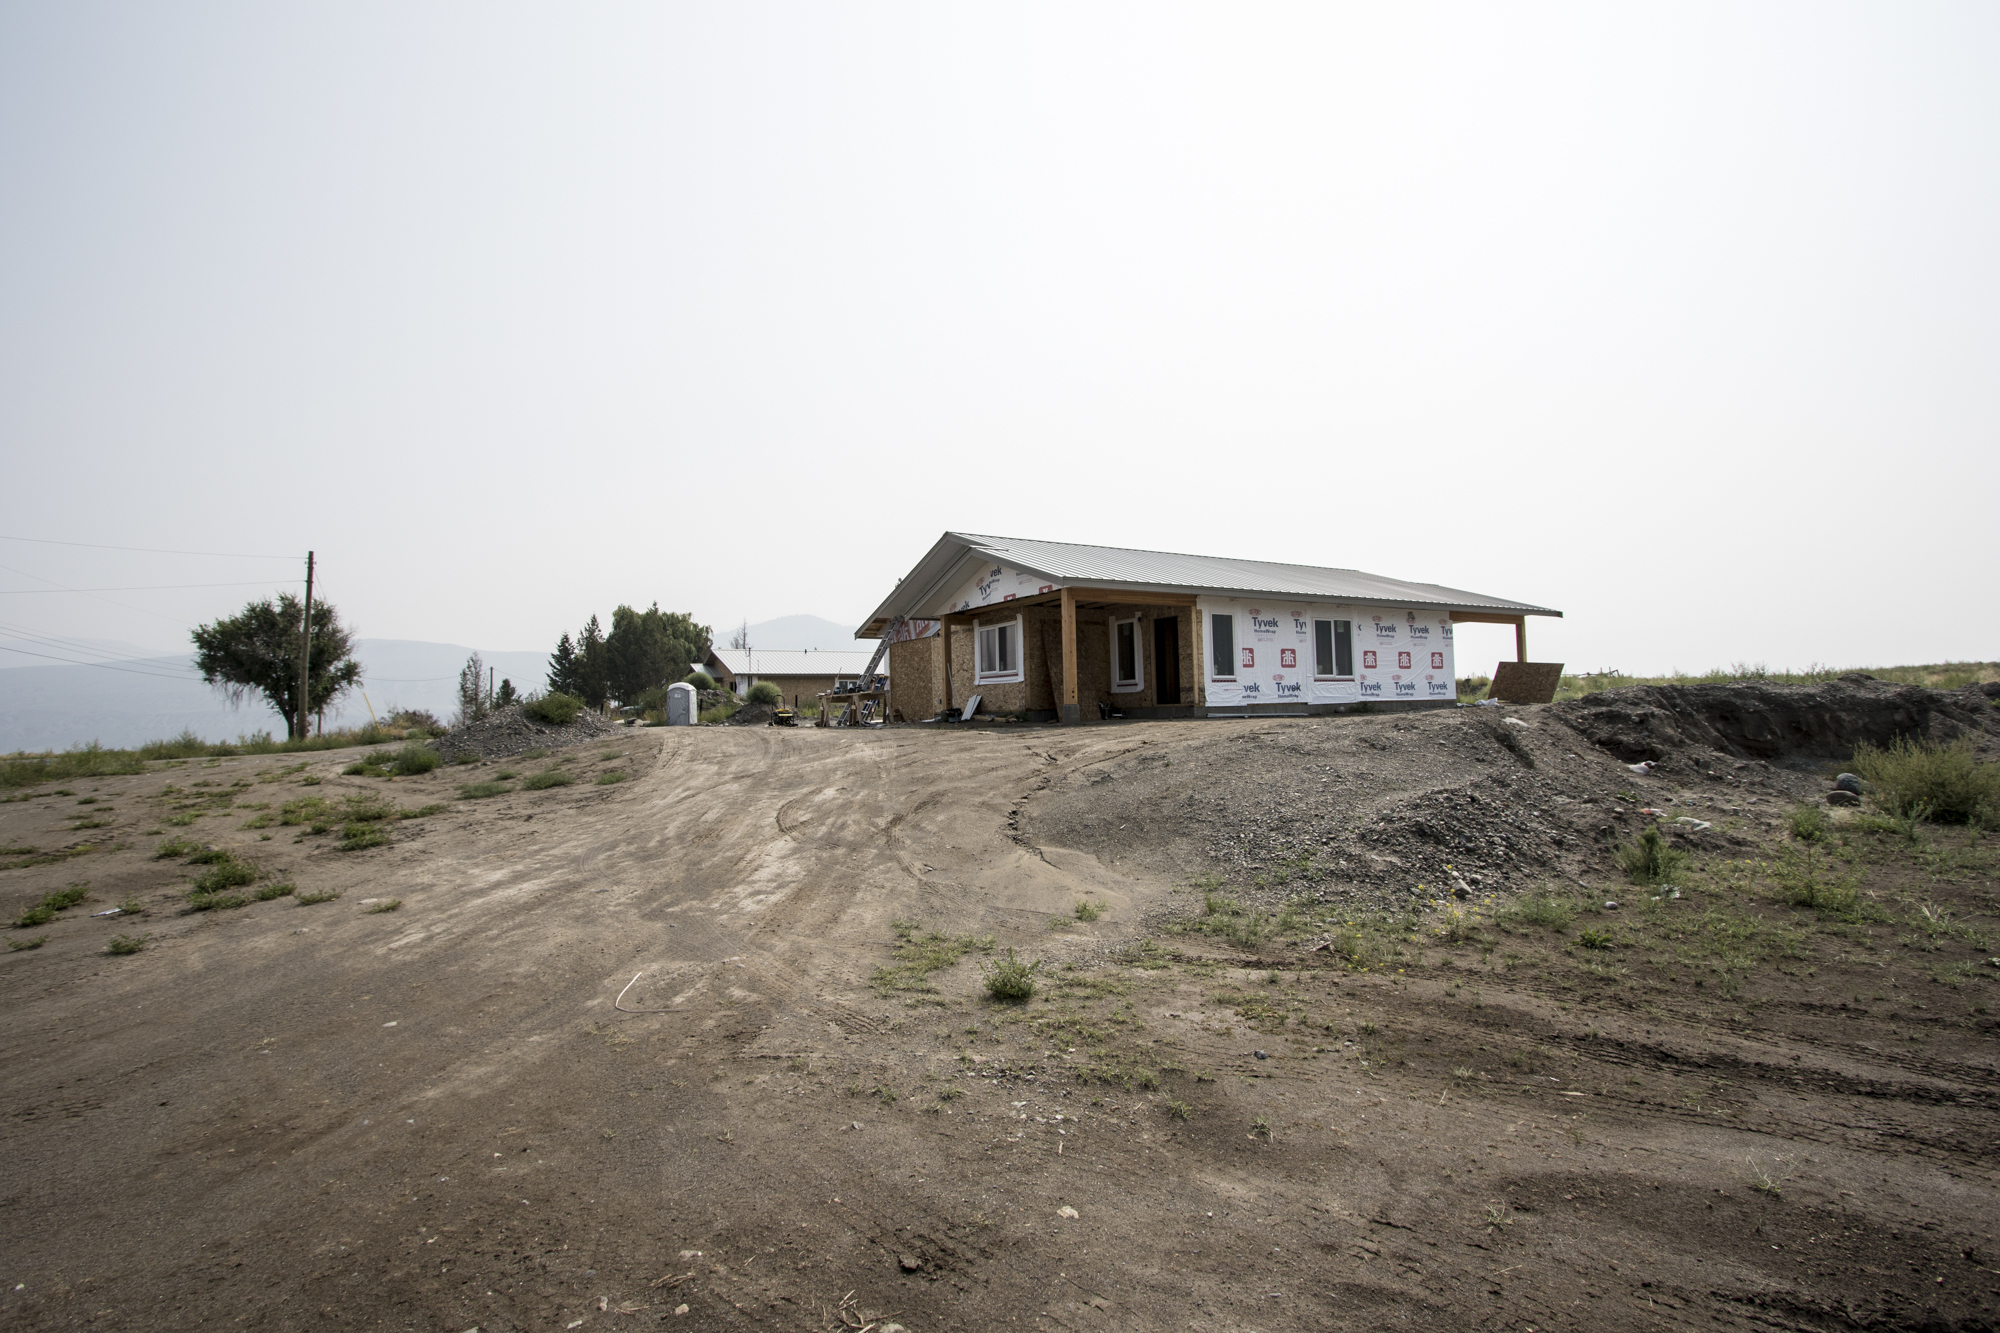 The Ashcroft Indian Band has spent nearly $3 million on reconstruction, rebuilding eight of the twelve homes that were destroyed. (Tina Lovgreen/CBC)